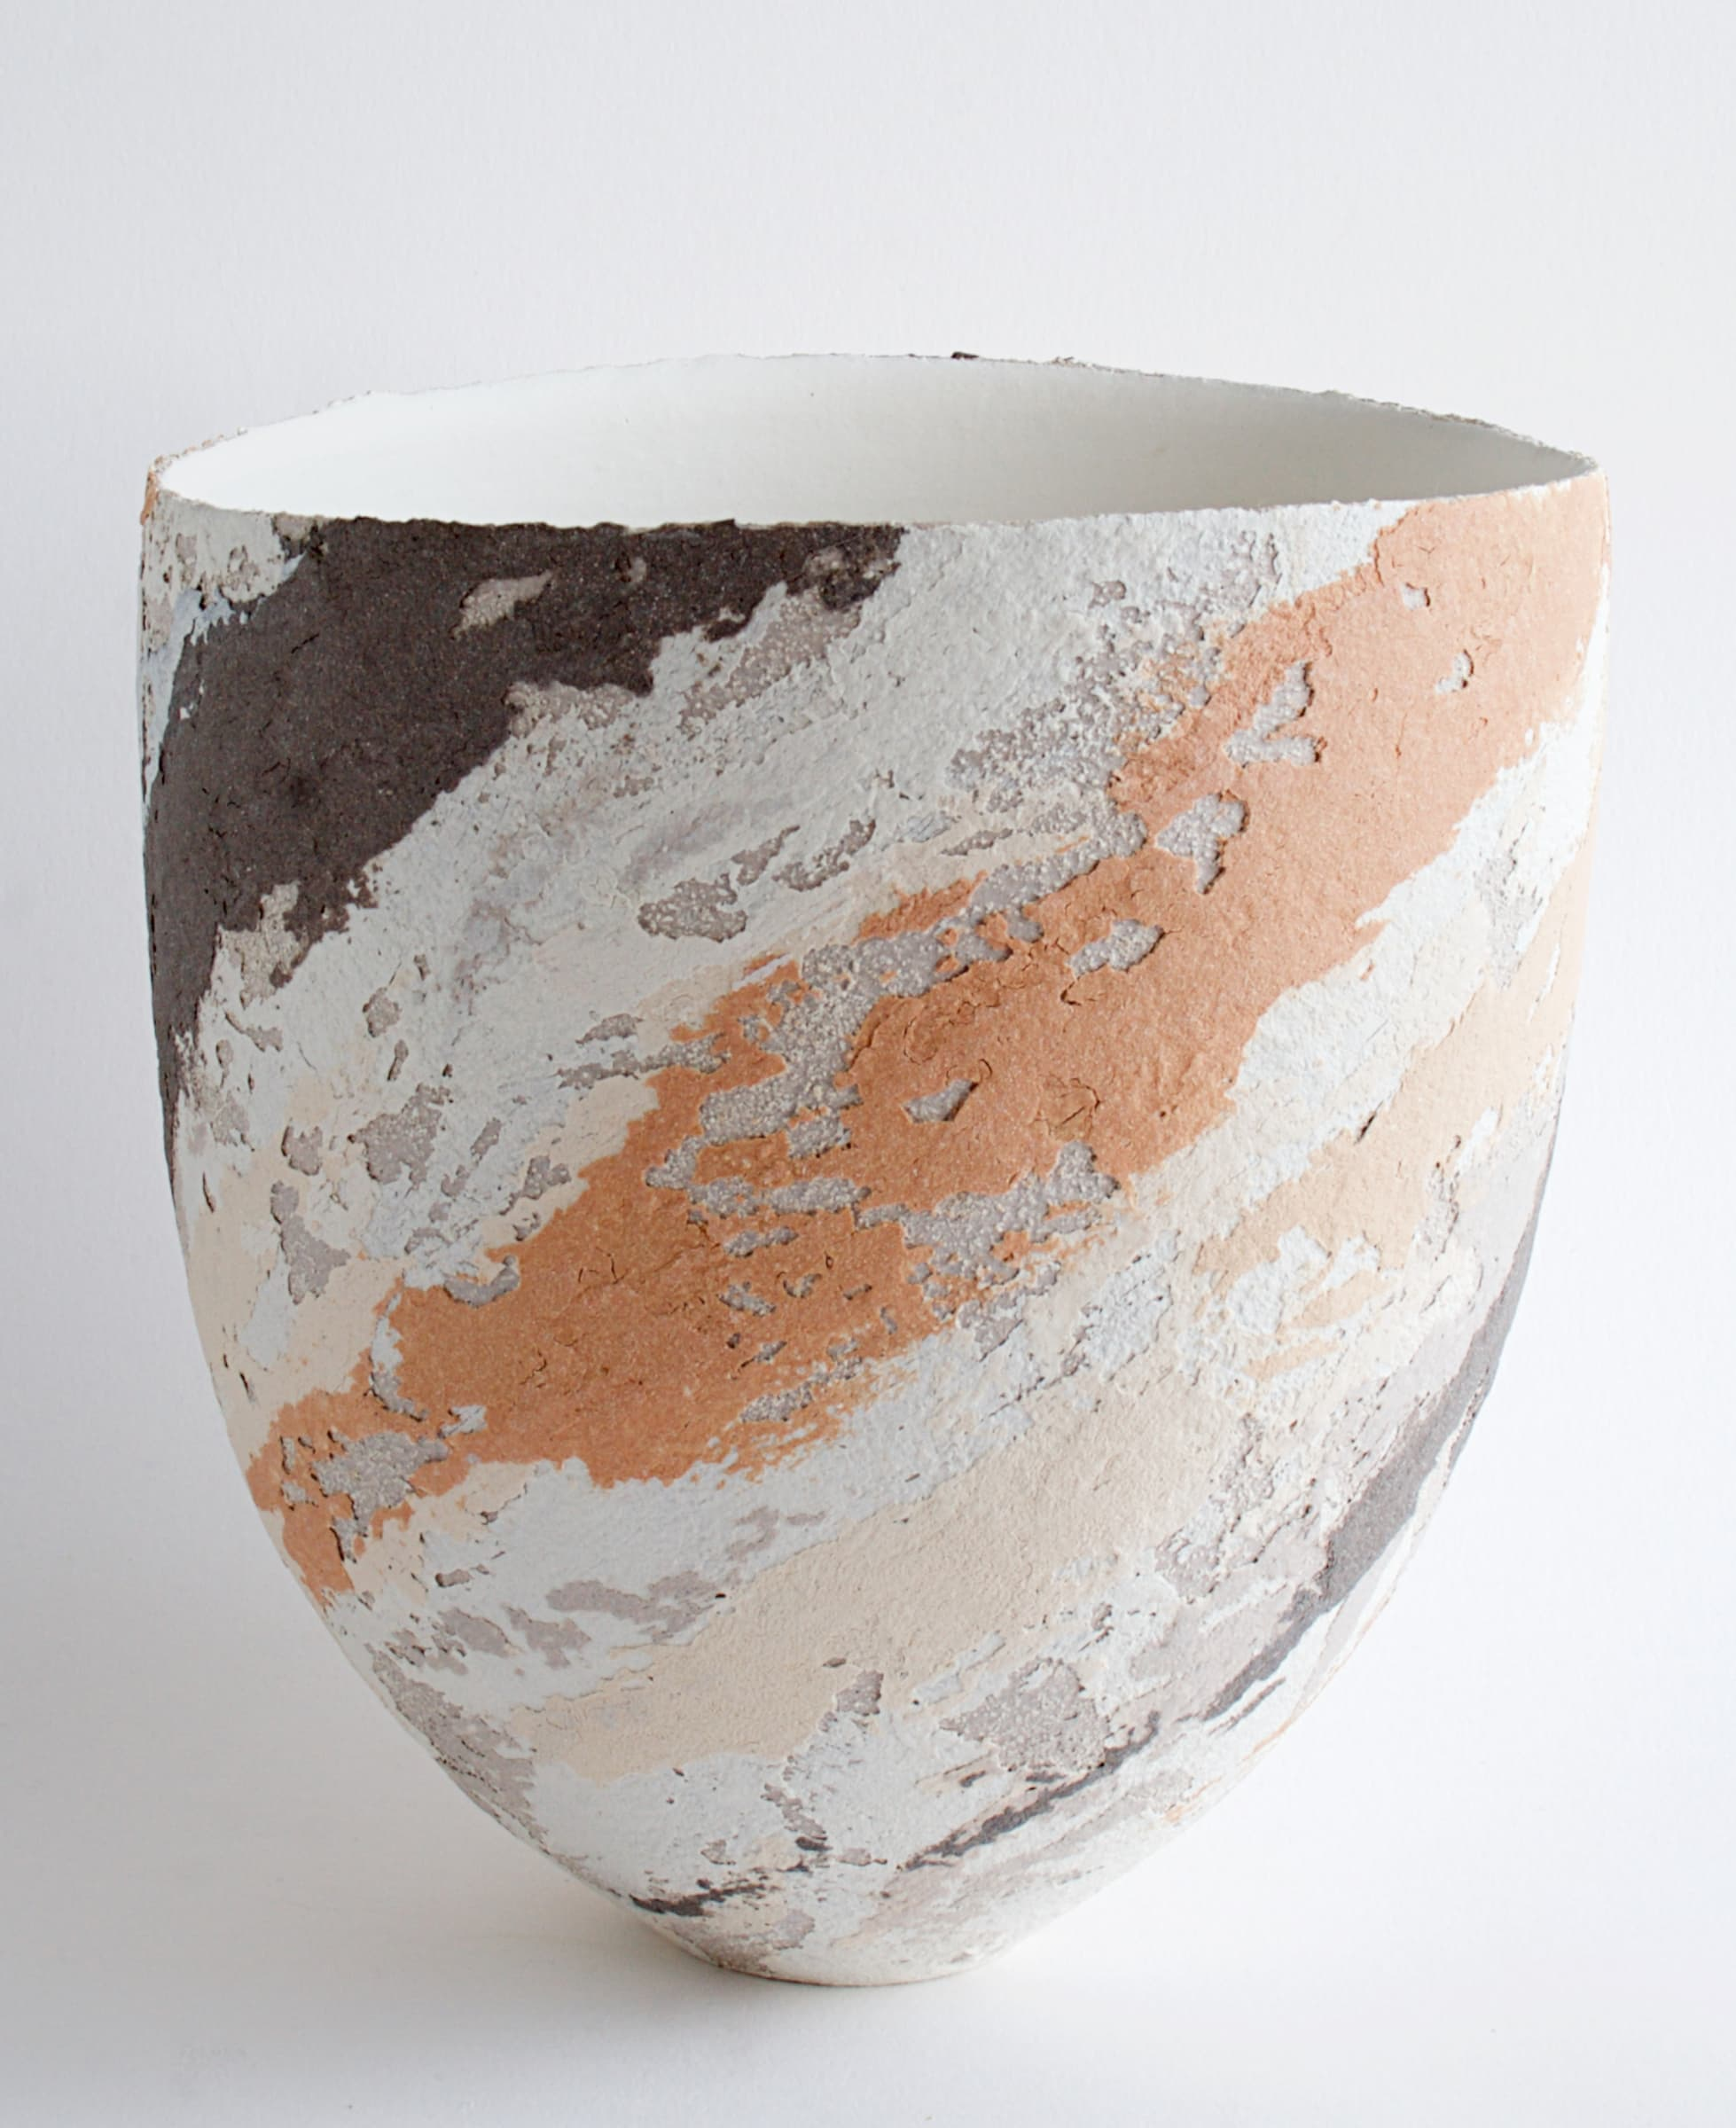 "<span class=""link fancybox-details-link""><a href=""/artists/79-clare-conrad/works/6936-clare-conrad-vessel-scooped-rim-2020/"">View Detail Page</a></span><div class=""artist""><strong>Clare Conrad</strong></div> b. 1948 <div class=""title""><em>Vessel, scooped rim</em>, 2020</div> <div class=""medium"">Stoneware</div> <div class=""dimensions"">h. 19 cm</div><div class=""price"">£385.00</div><div class=""copyright_line"">Copyright The Artist</div>"